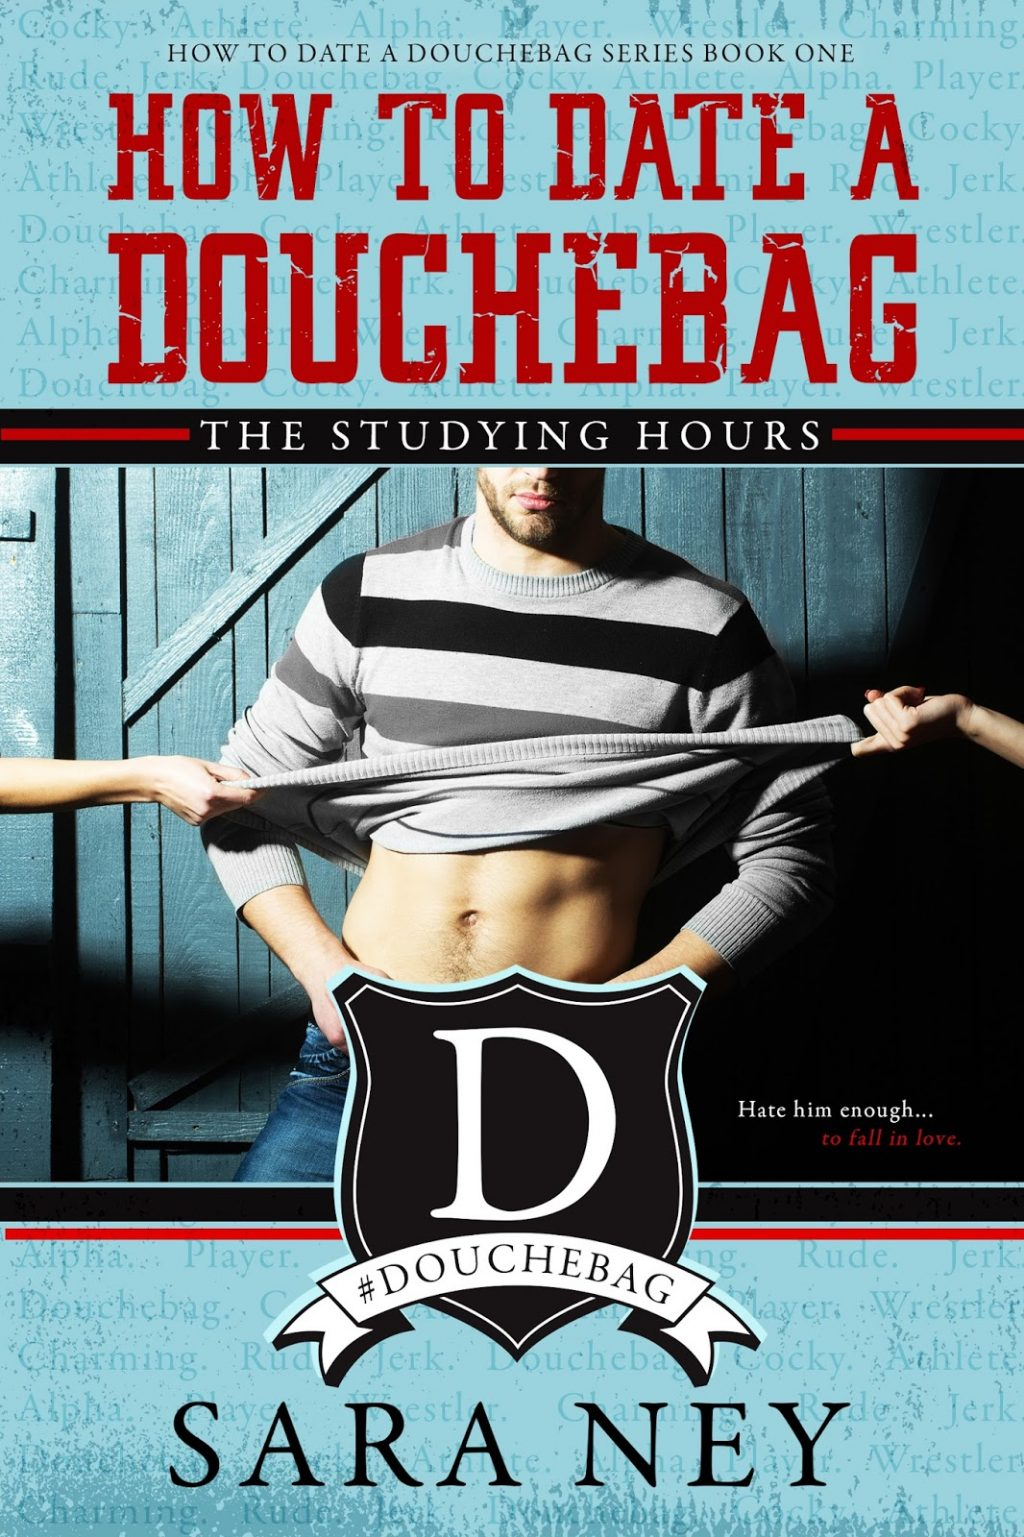 How To Date A Douchebag (The Studying Hours #1) by Sara Ney